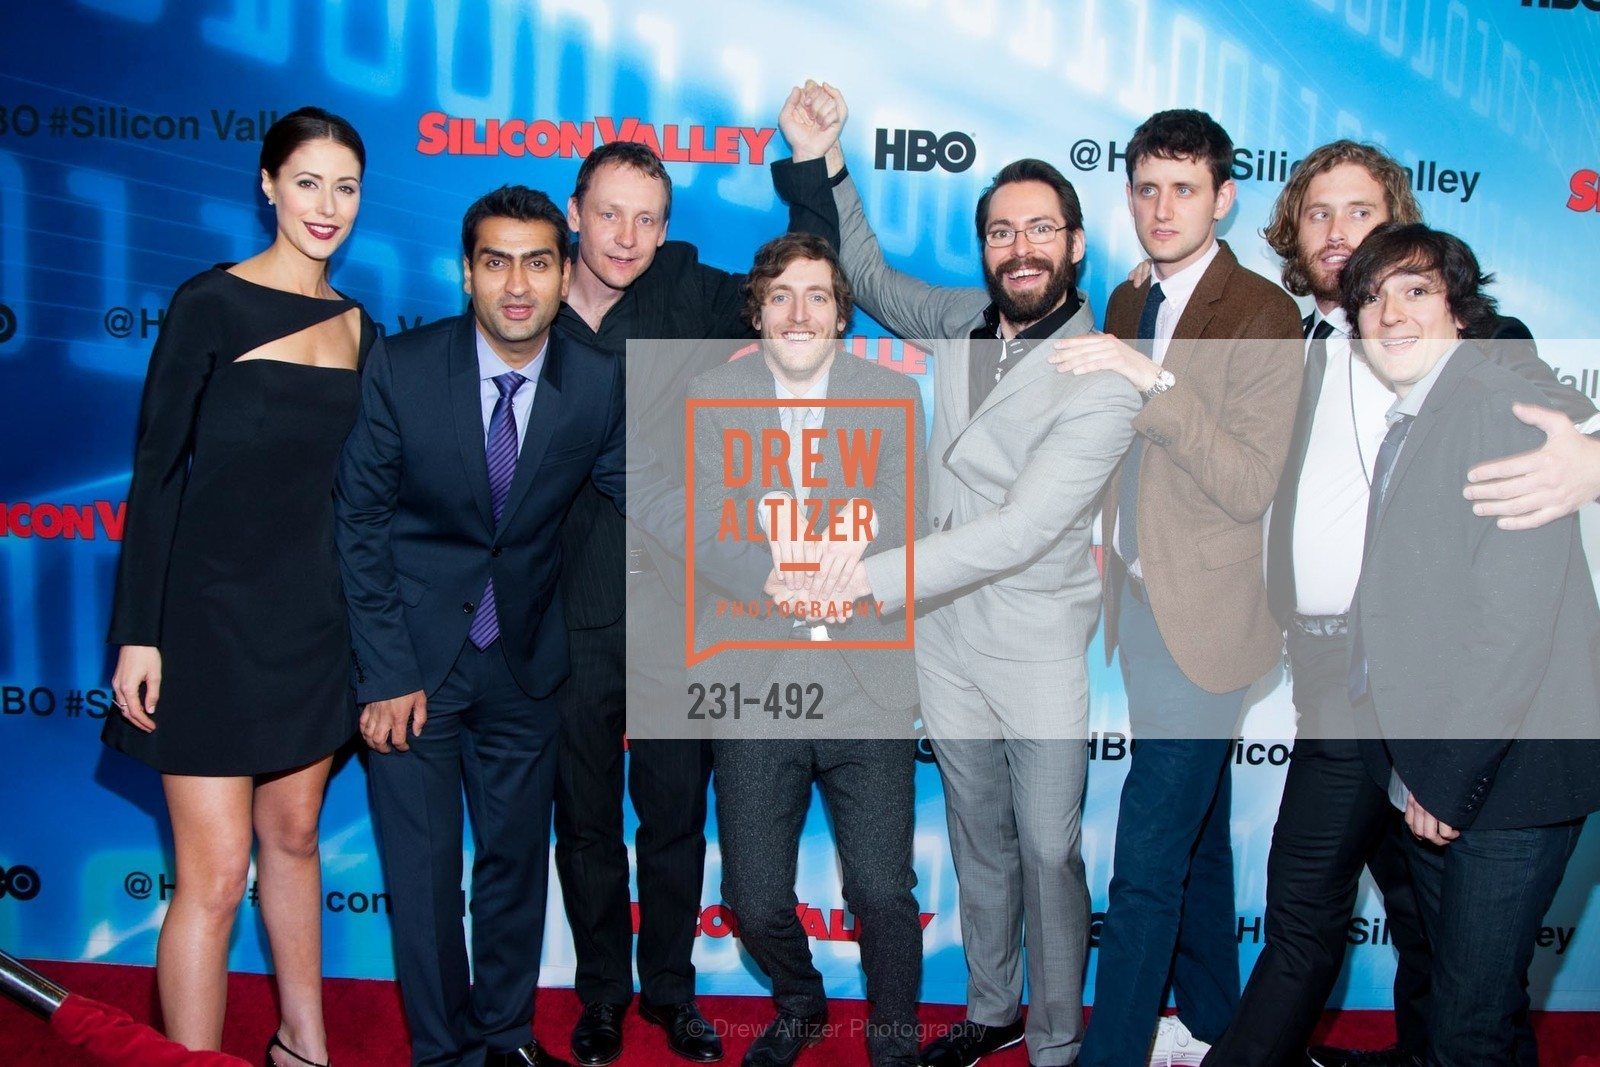 Amanda Crew, Kumail Nanjiani, Alec Berg, Thomas Middleditch, Martin Starr, Zach Woods, TJ Miller, Josh Brener, HBO Original Series 'Silicon Valley' Bay Area Premiere, US. US, April 2nd, 2014,Drew Altizer, Drew Altizer Photography, full-service agency, private events, San Francisco photographer, photographer california